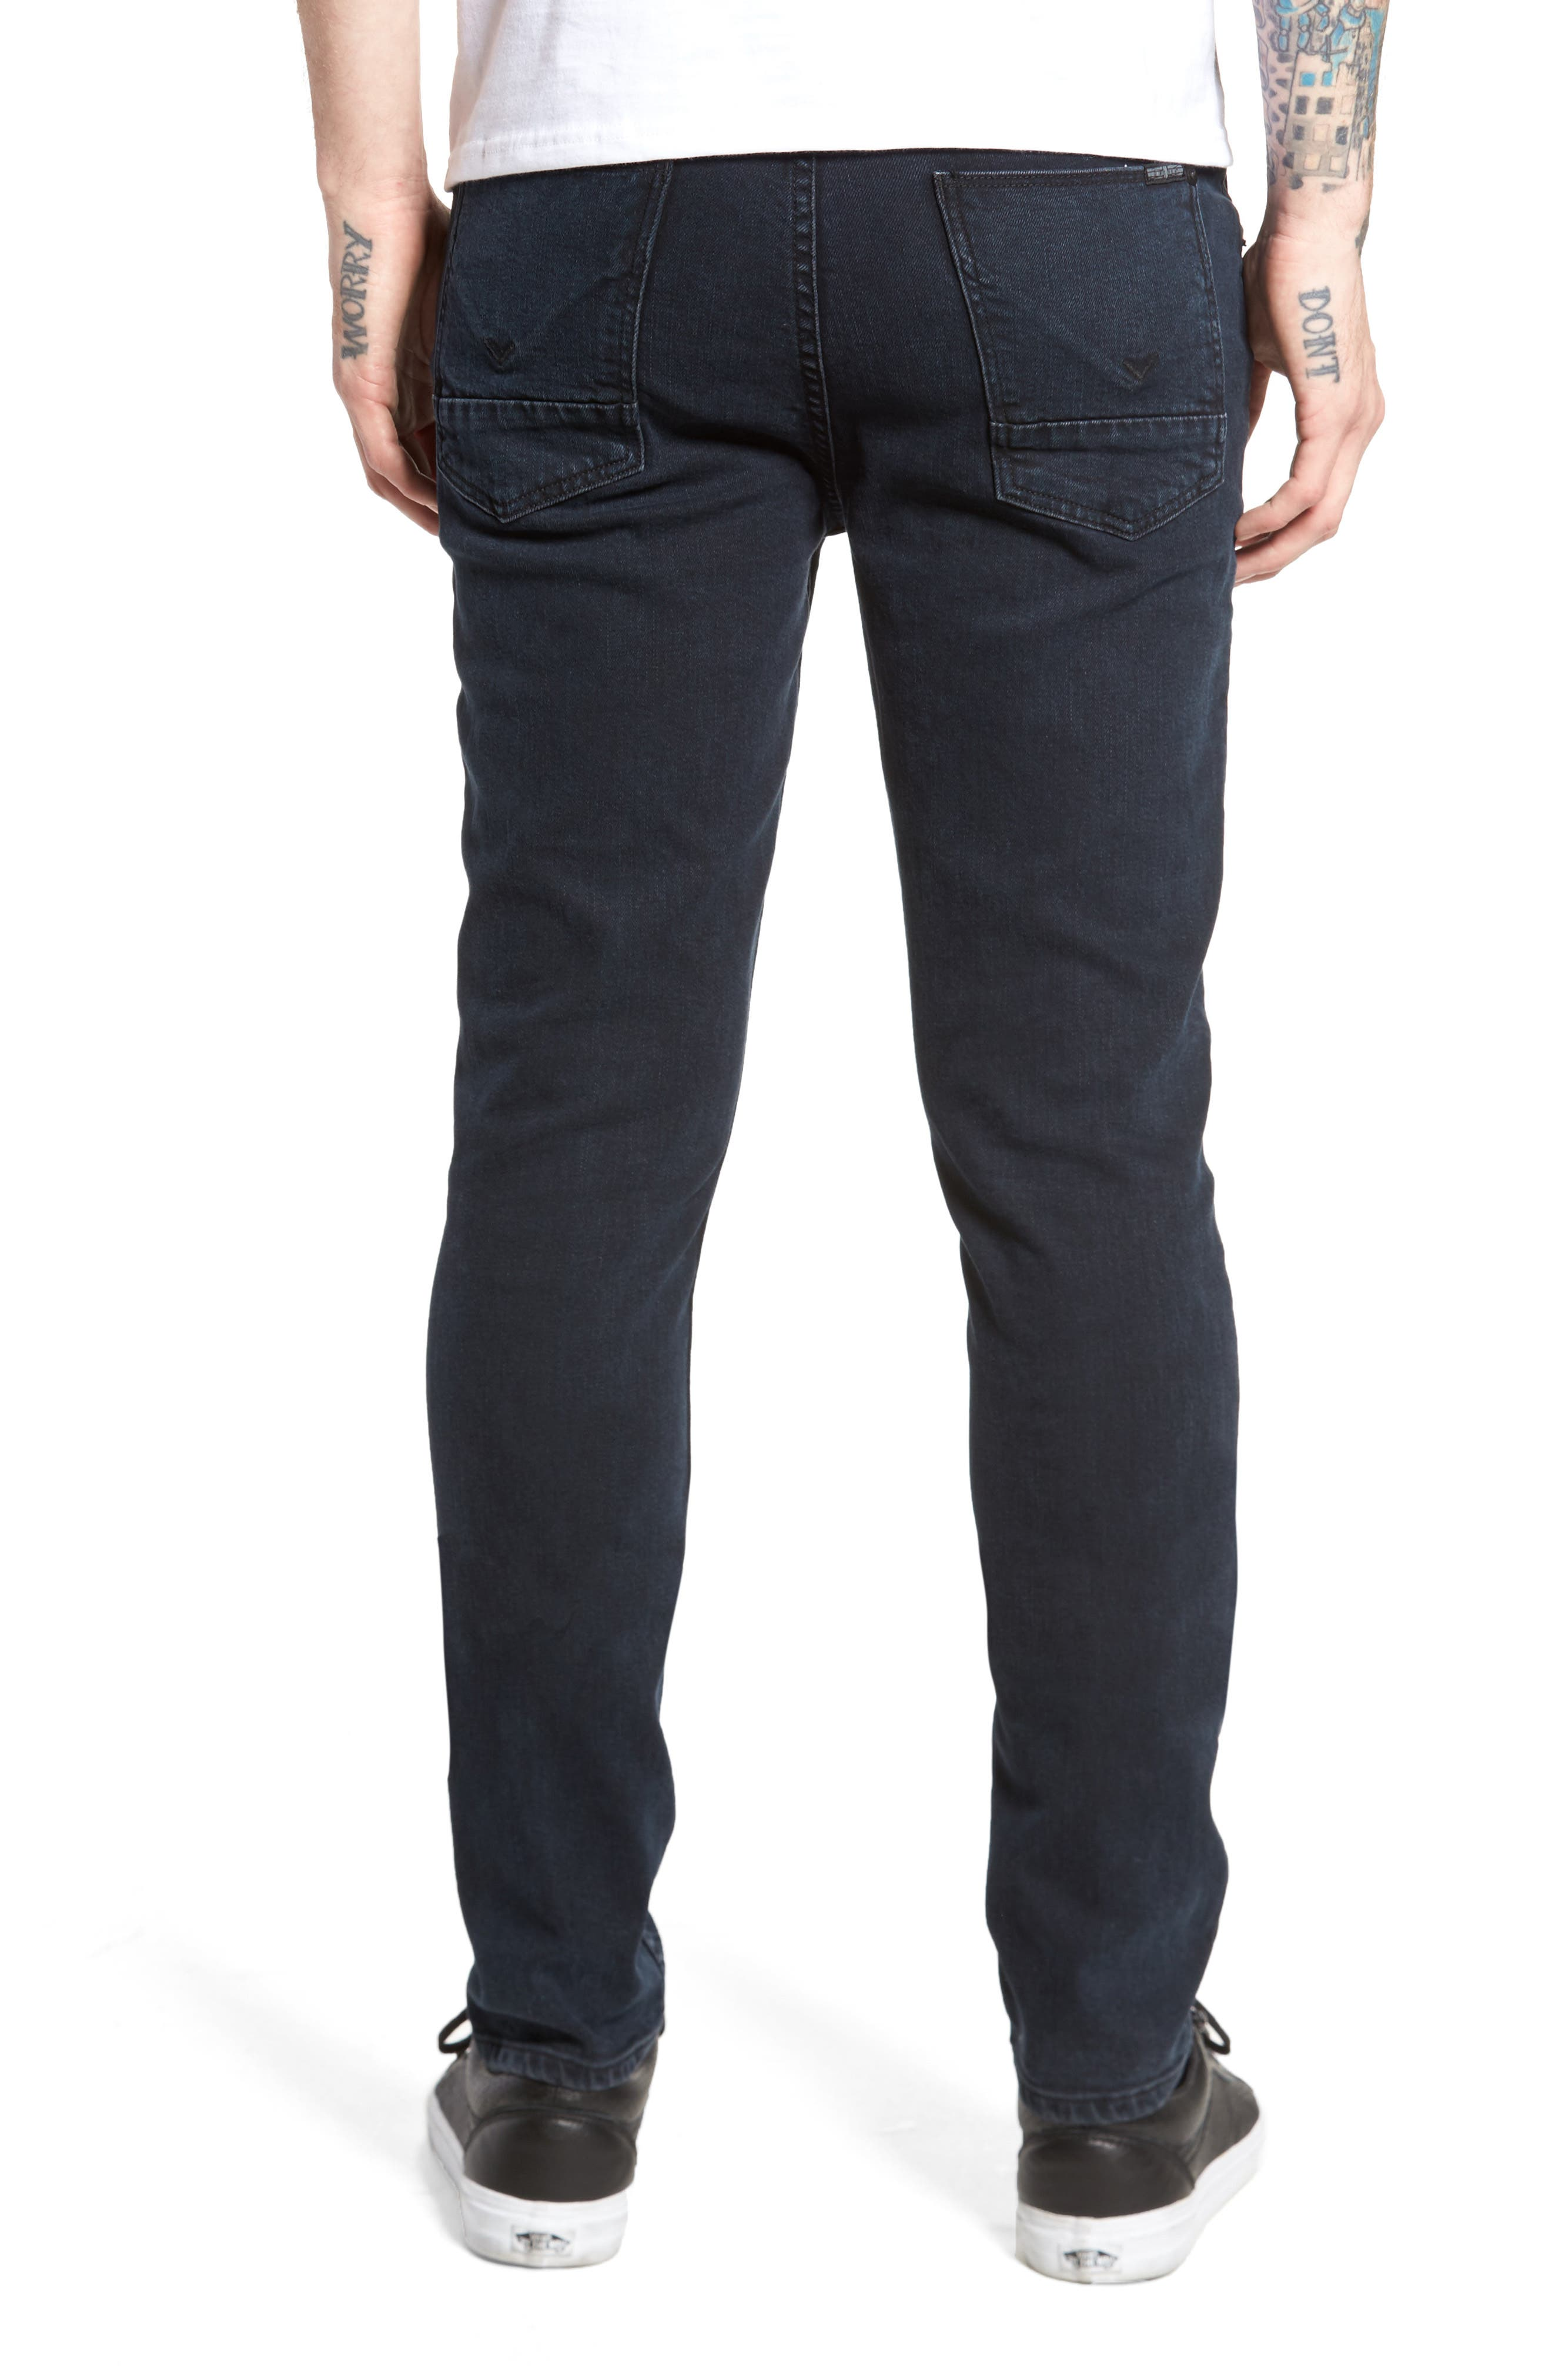 Axl Skinny Fit Jeans,                             Alternate thumbnail 2, color,                             Sight Unseen